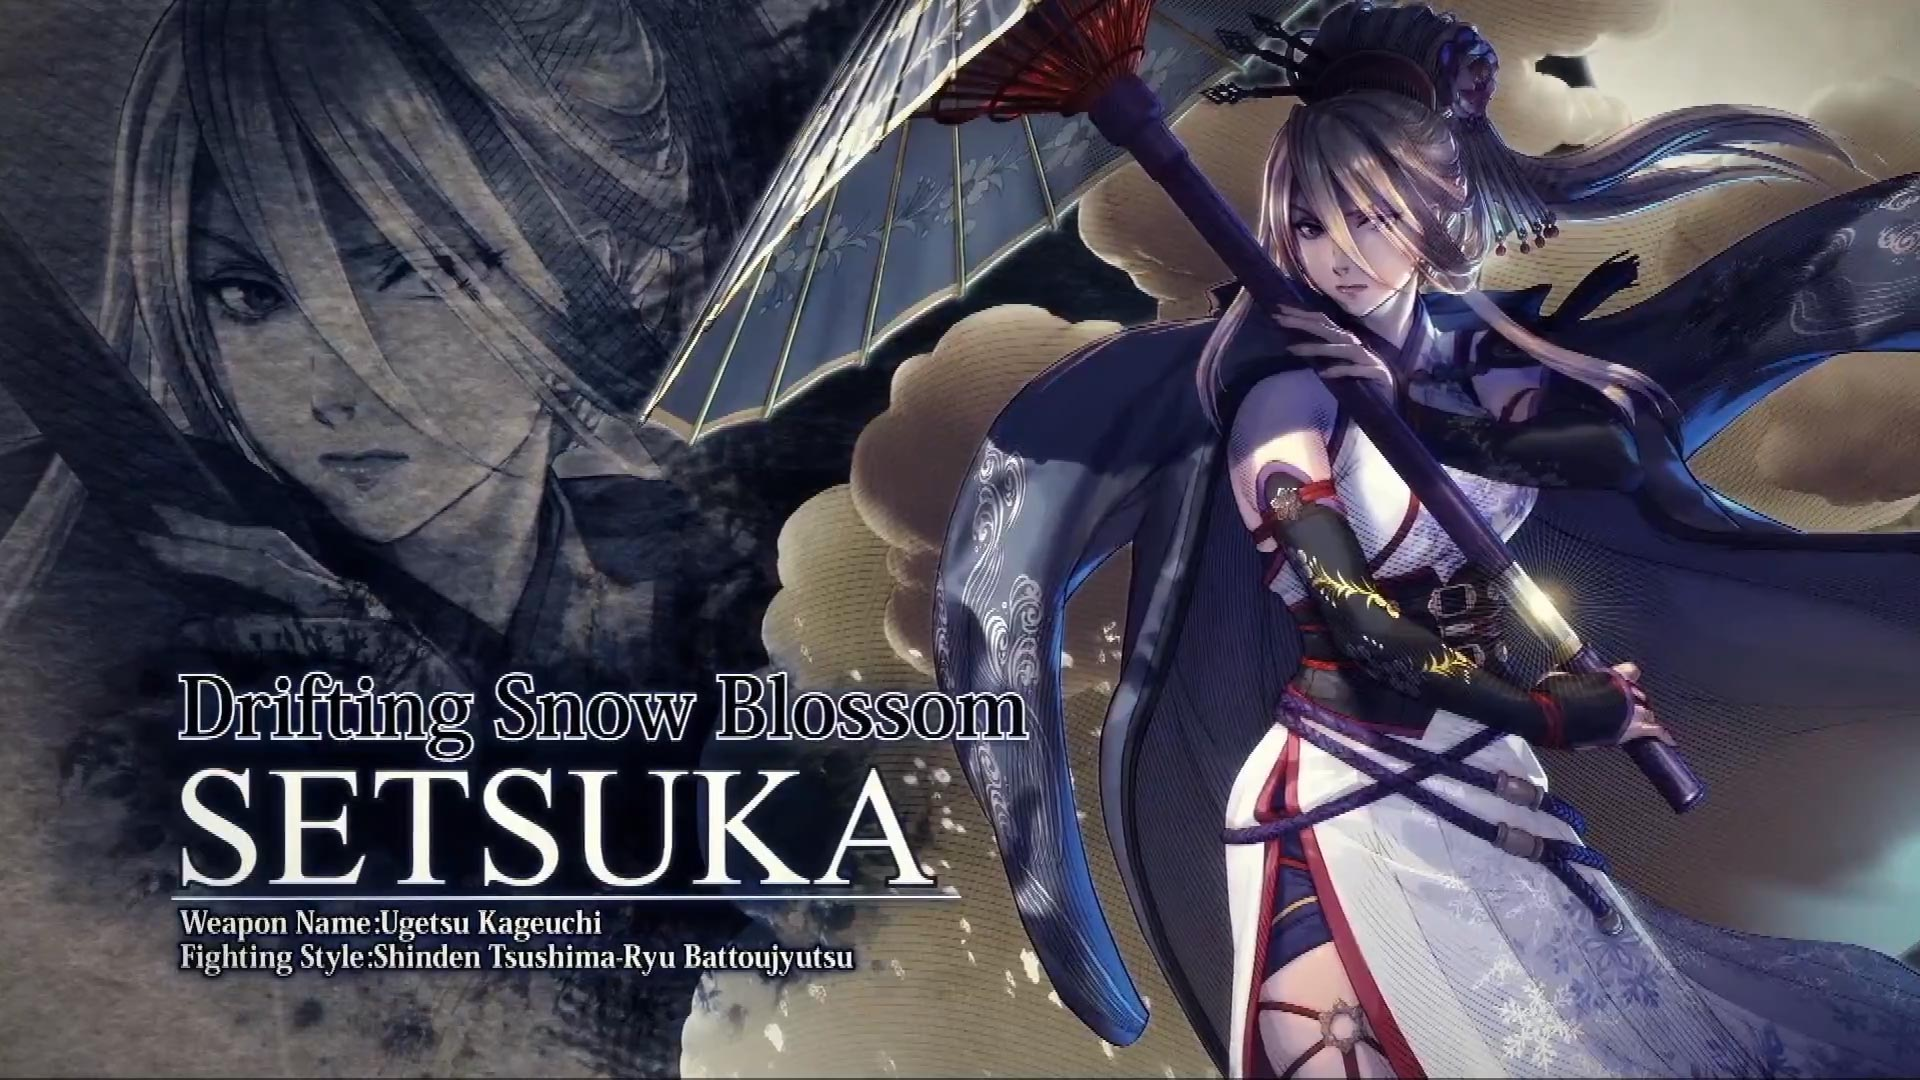 Setsuka in Soul Calibur 6 1 out of 3 image gallery